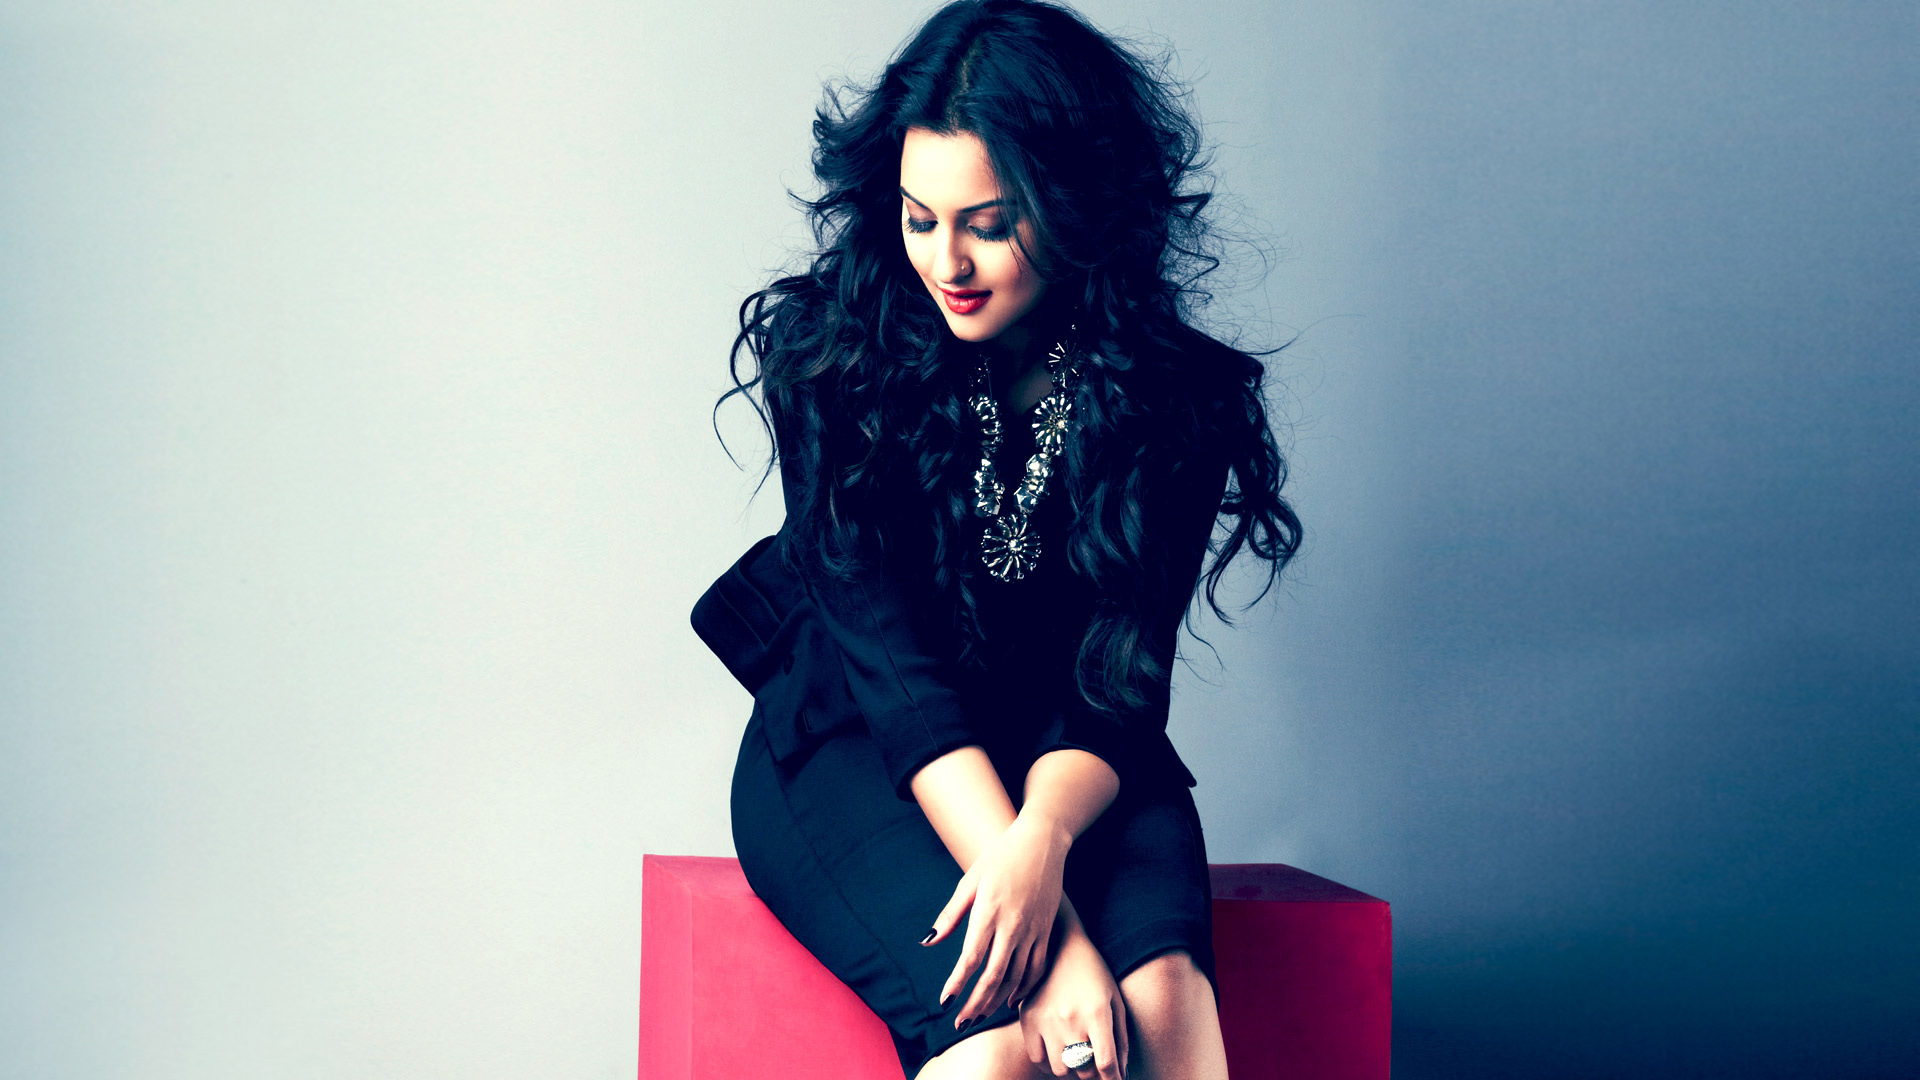 sonakshi sinha full hd wallpaper and background image | 1920x1080